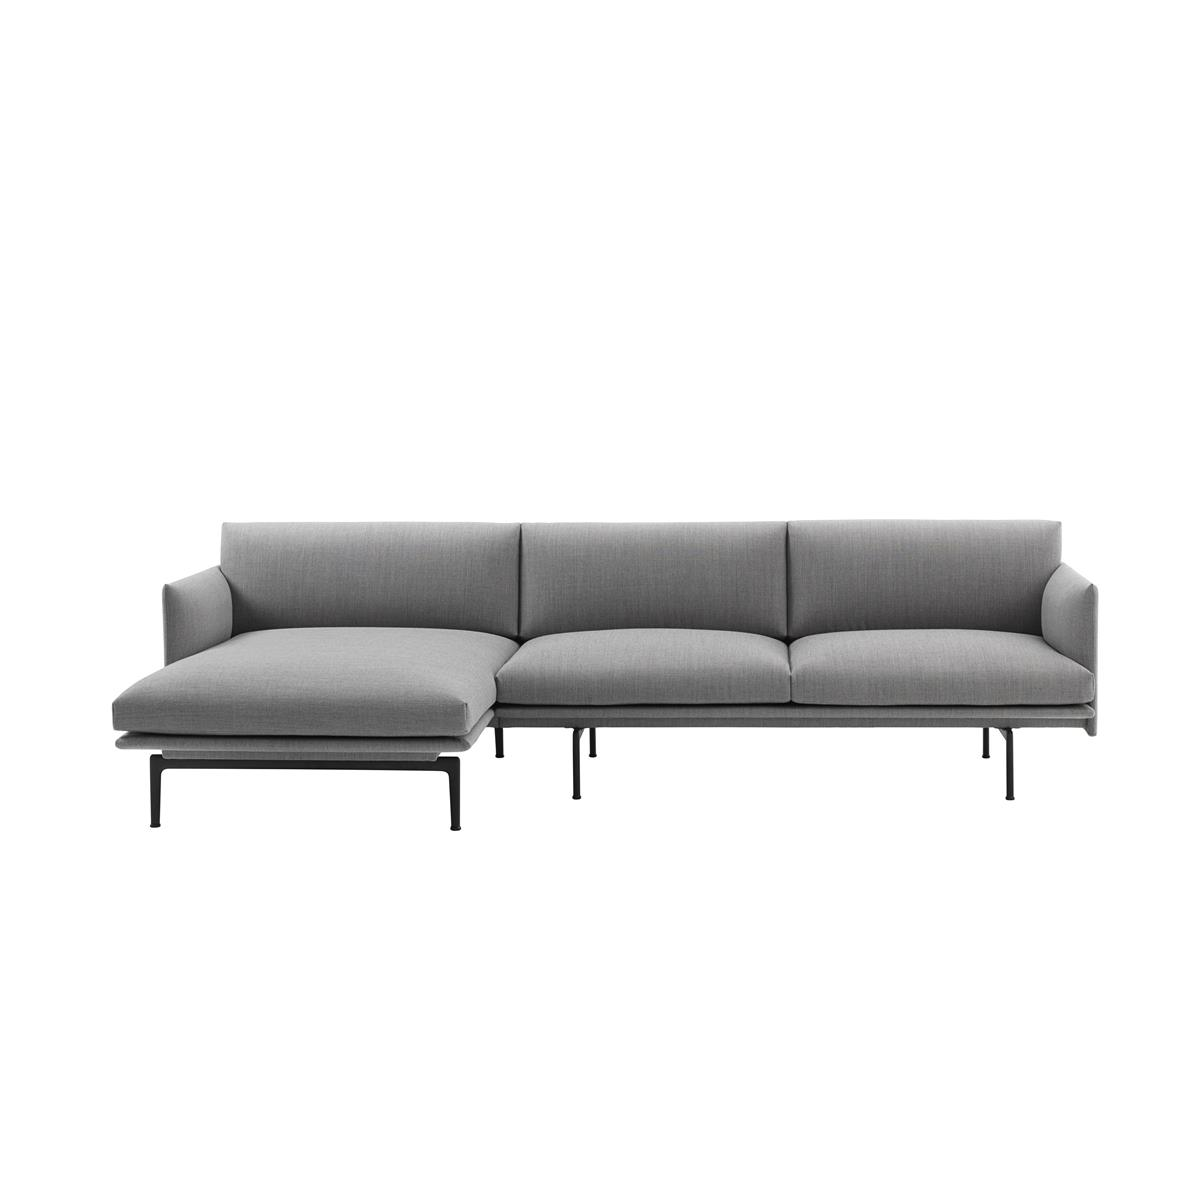 Outline Sofa Chaise Longue Left - Steelcut